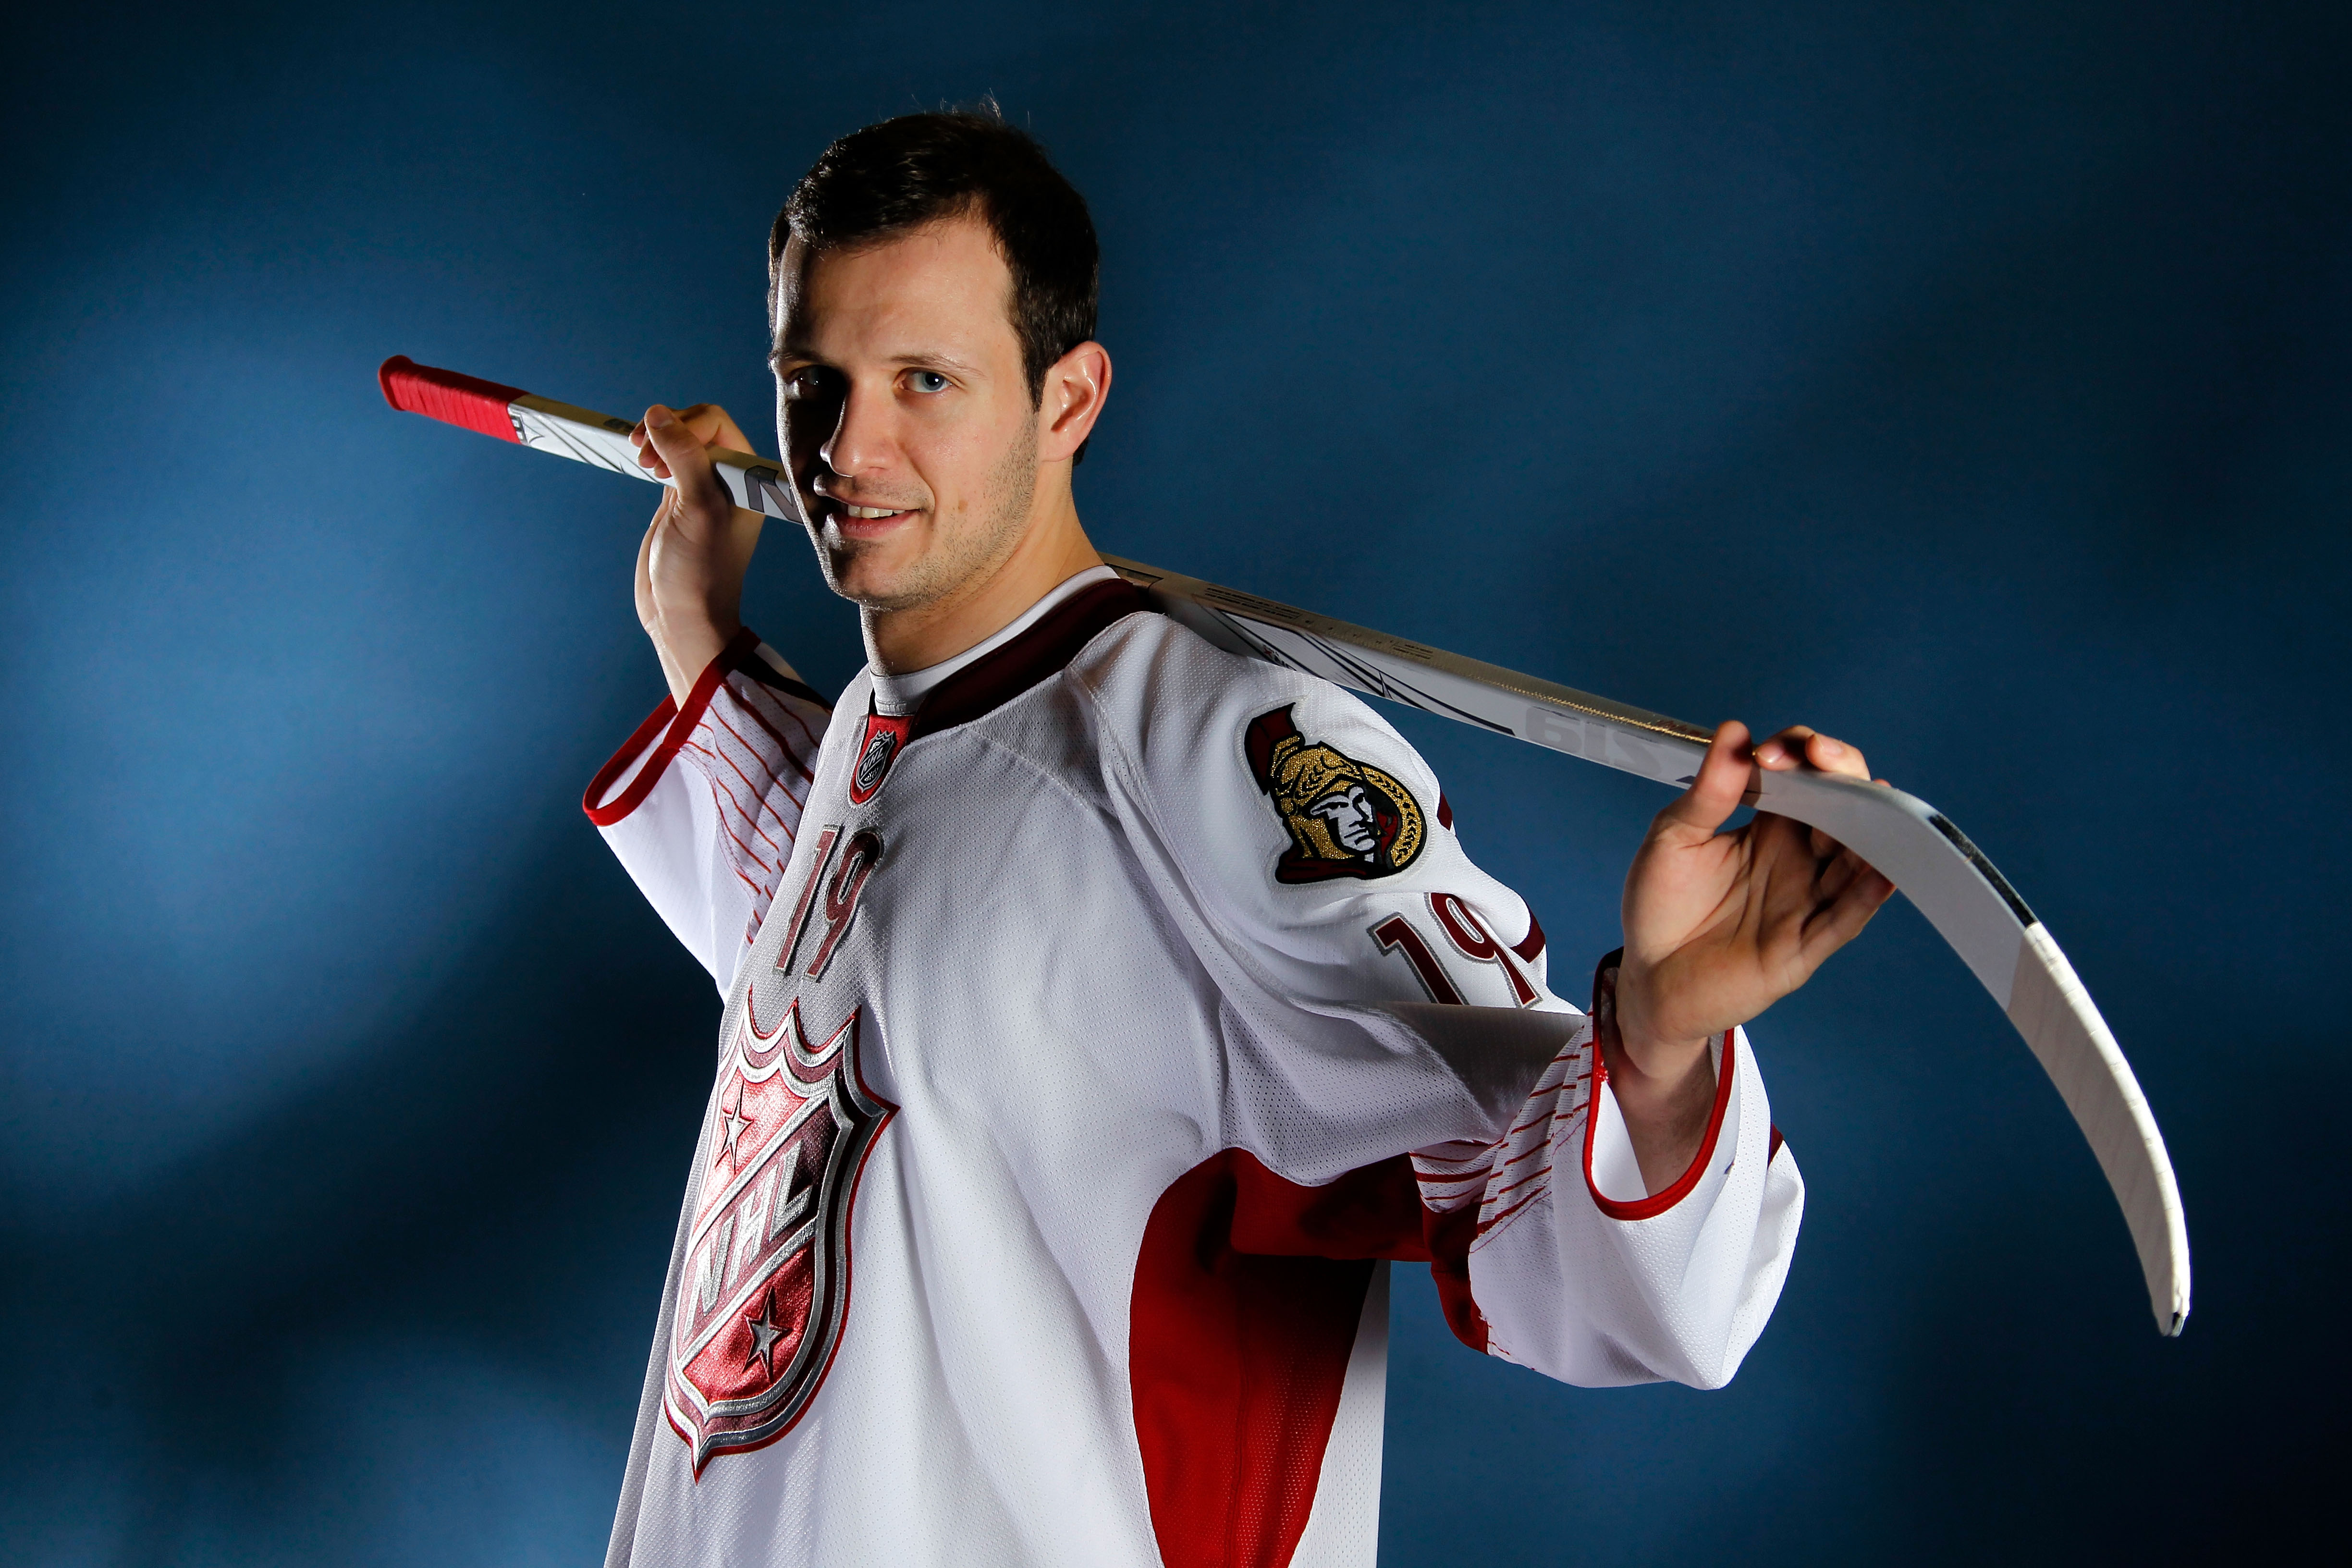 Jason Spezza took his NHL game to a new level after leading the AHL in scoring during the last lockout. (Getty)